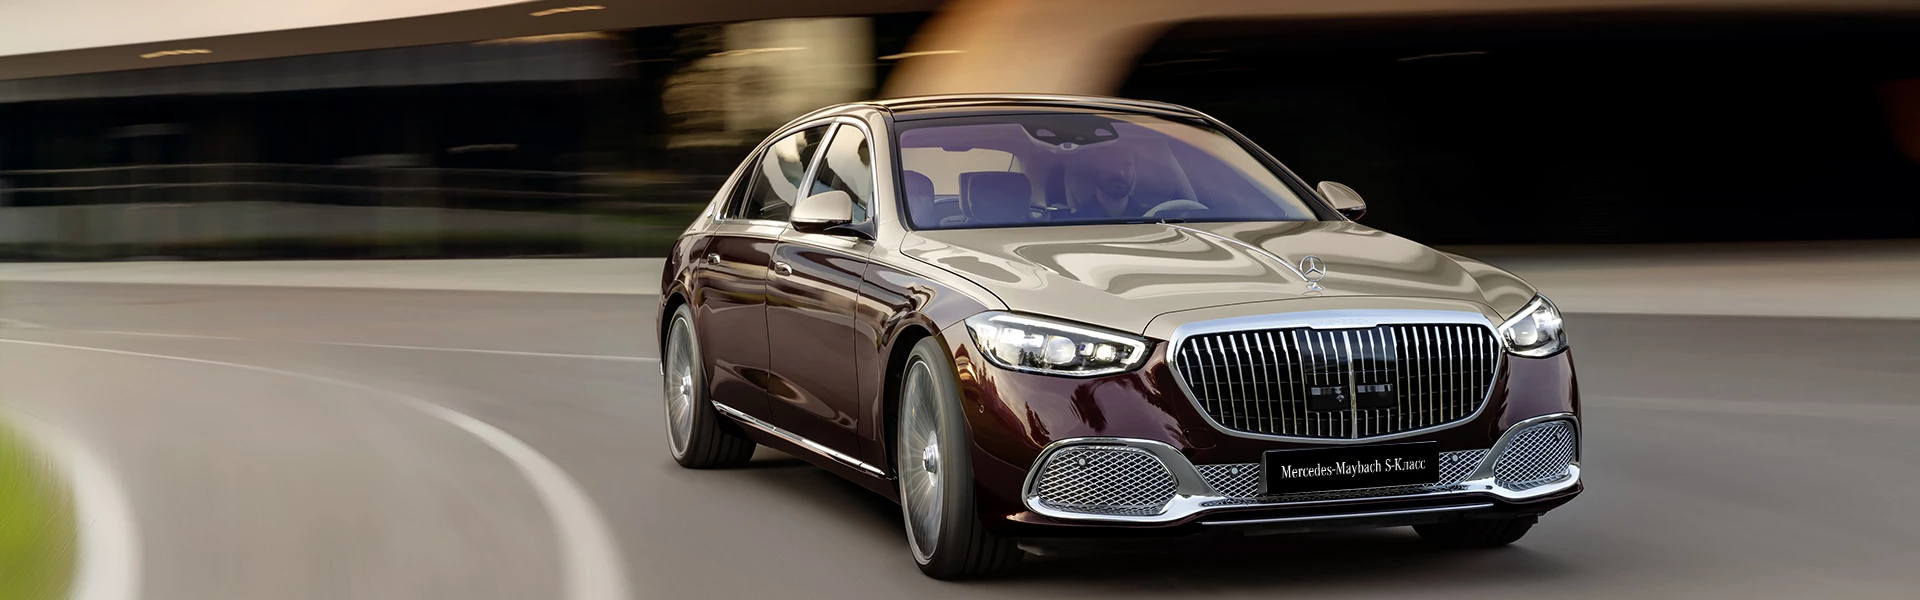 Mercedes-Maybach S седан